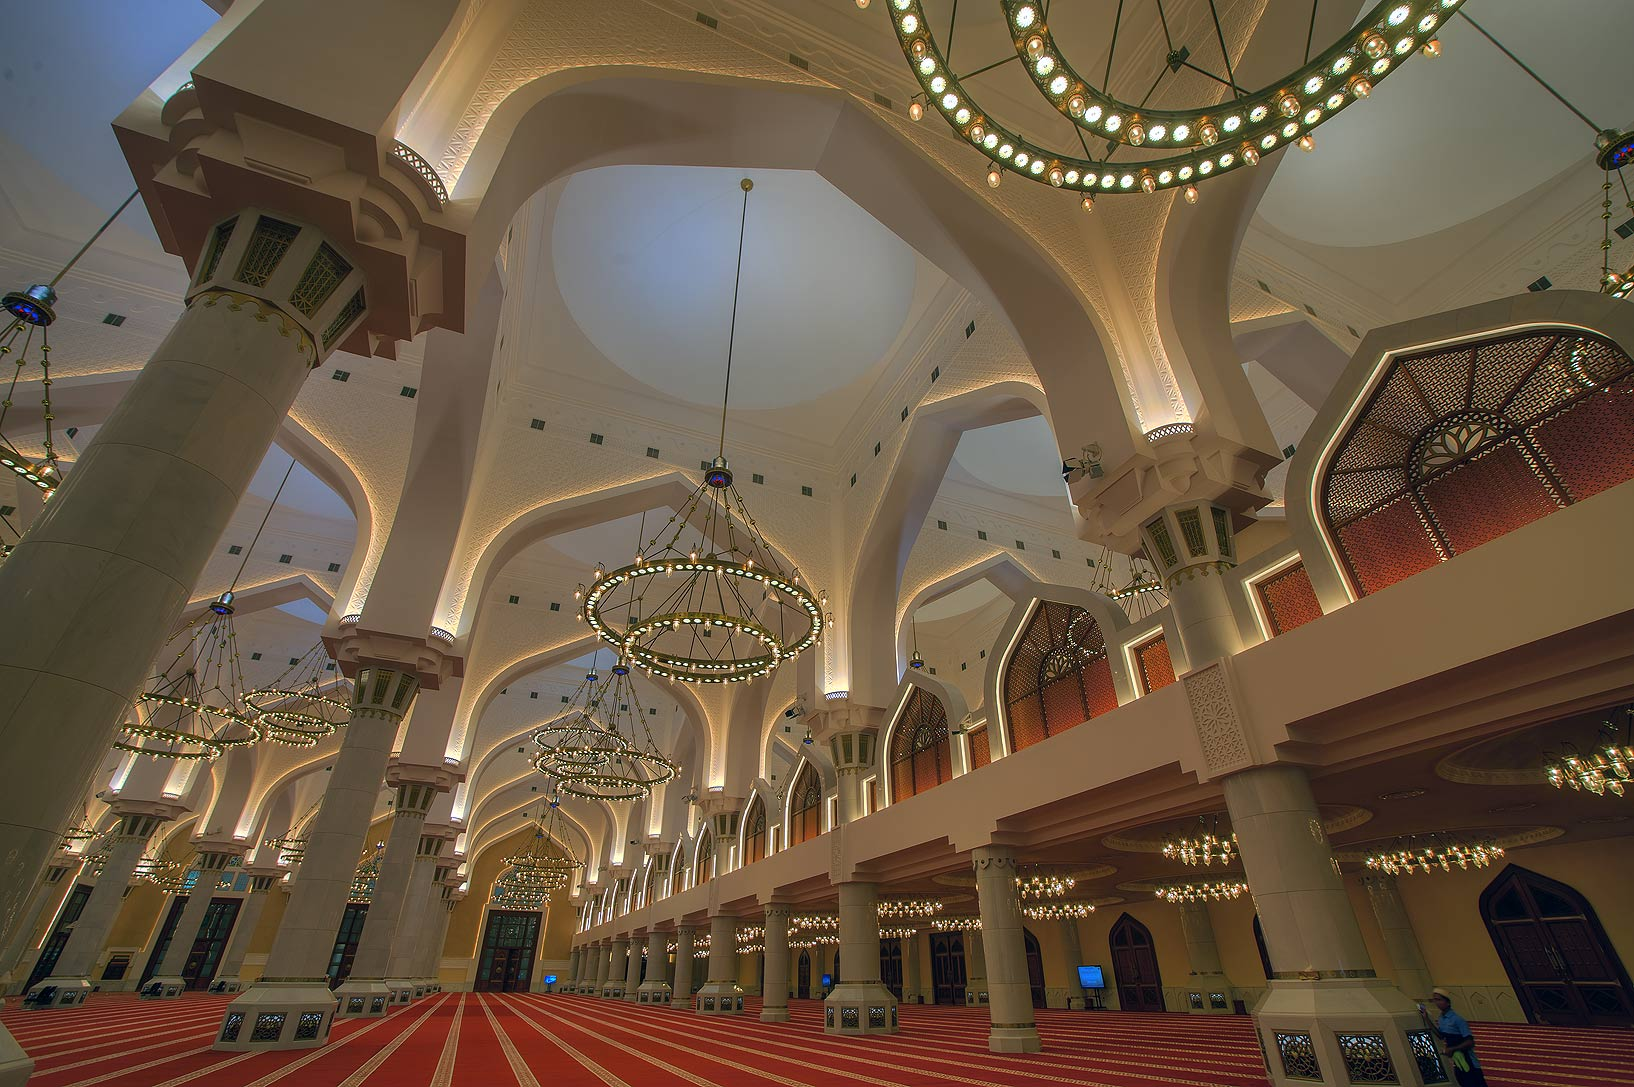 Arches and columns of State Mosque (Sheikh Imam...Ibn Abdul Wahhab Mosque). Doha, Qatar